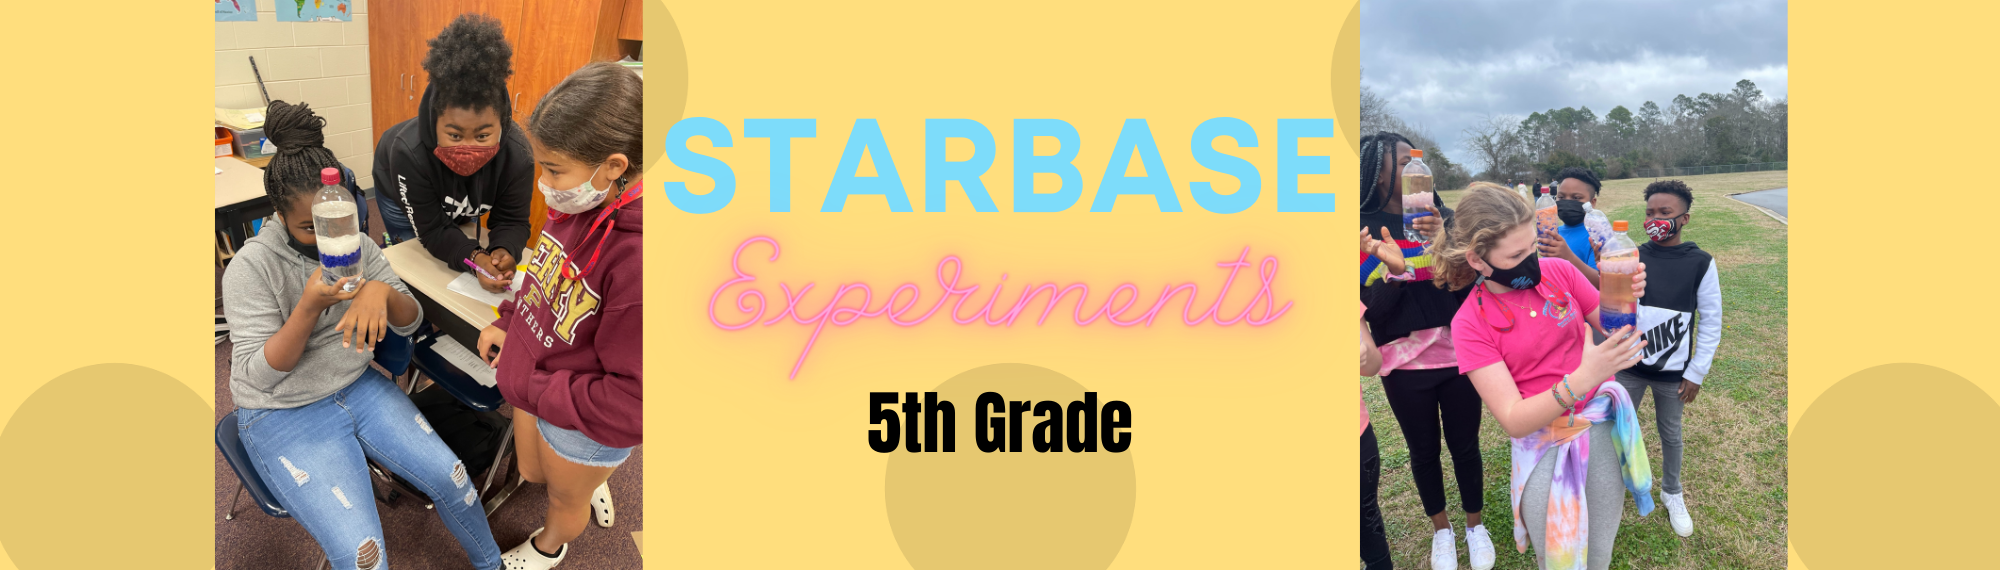 Starbase Experiments